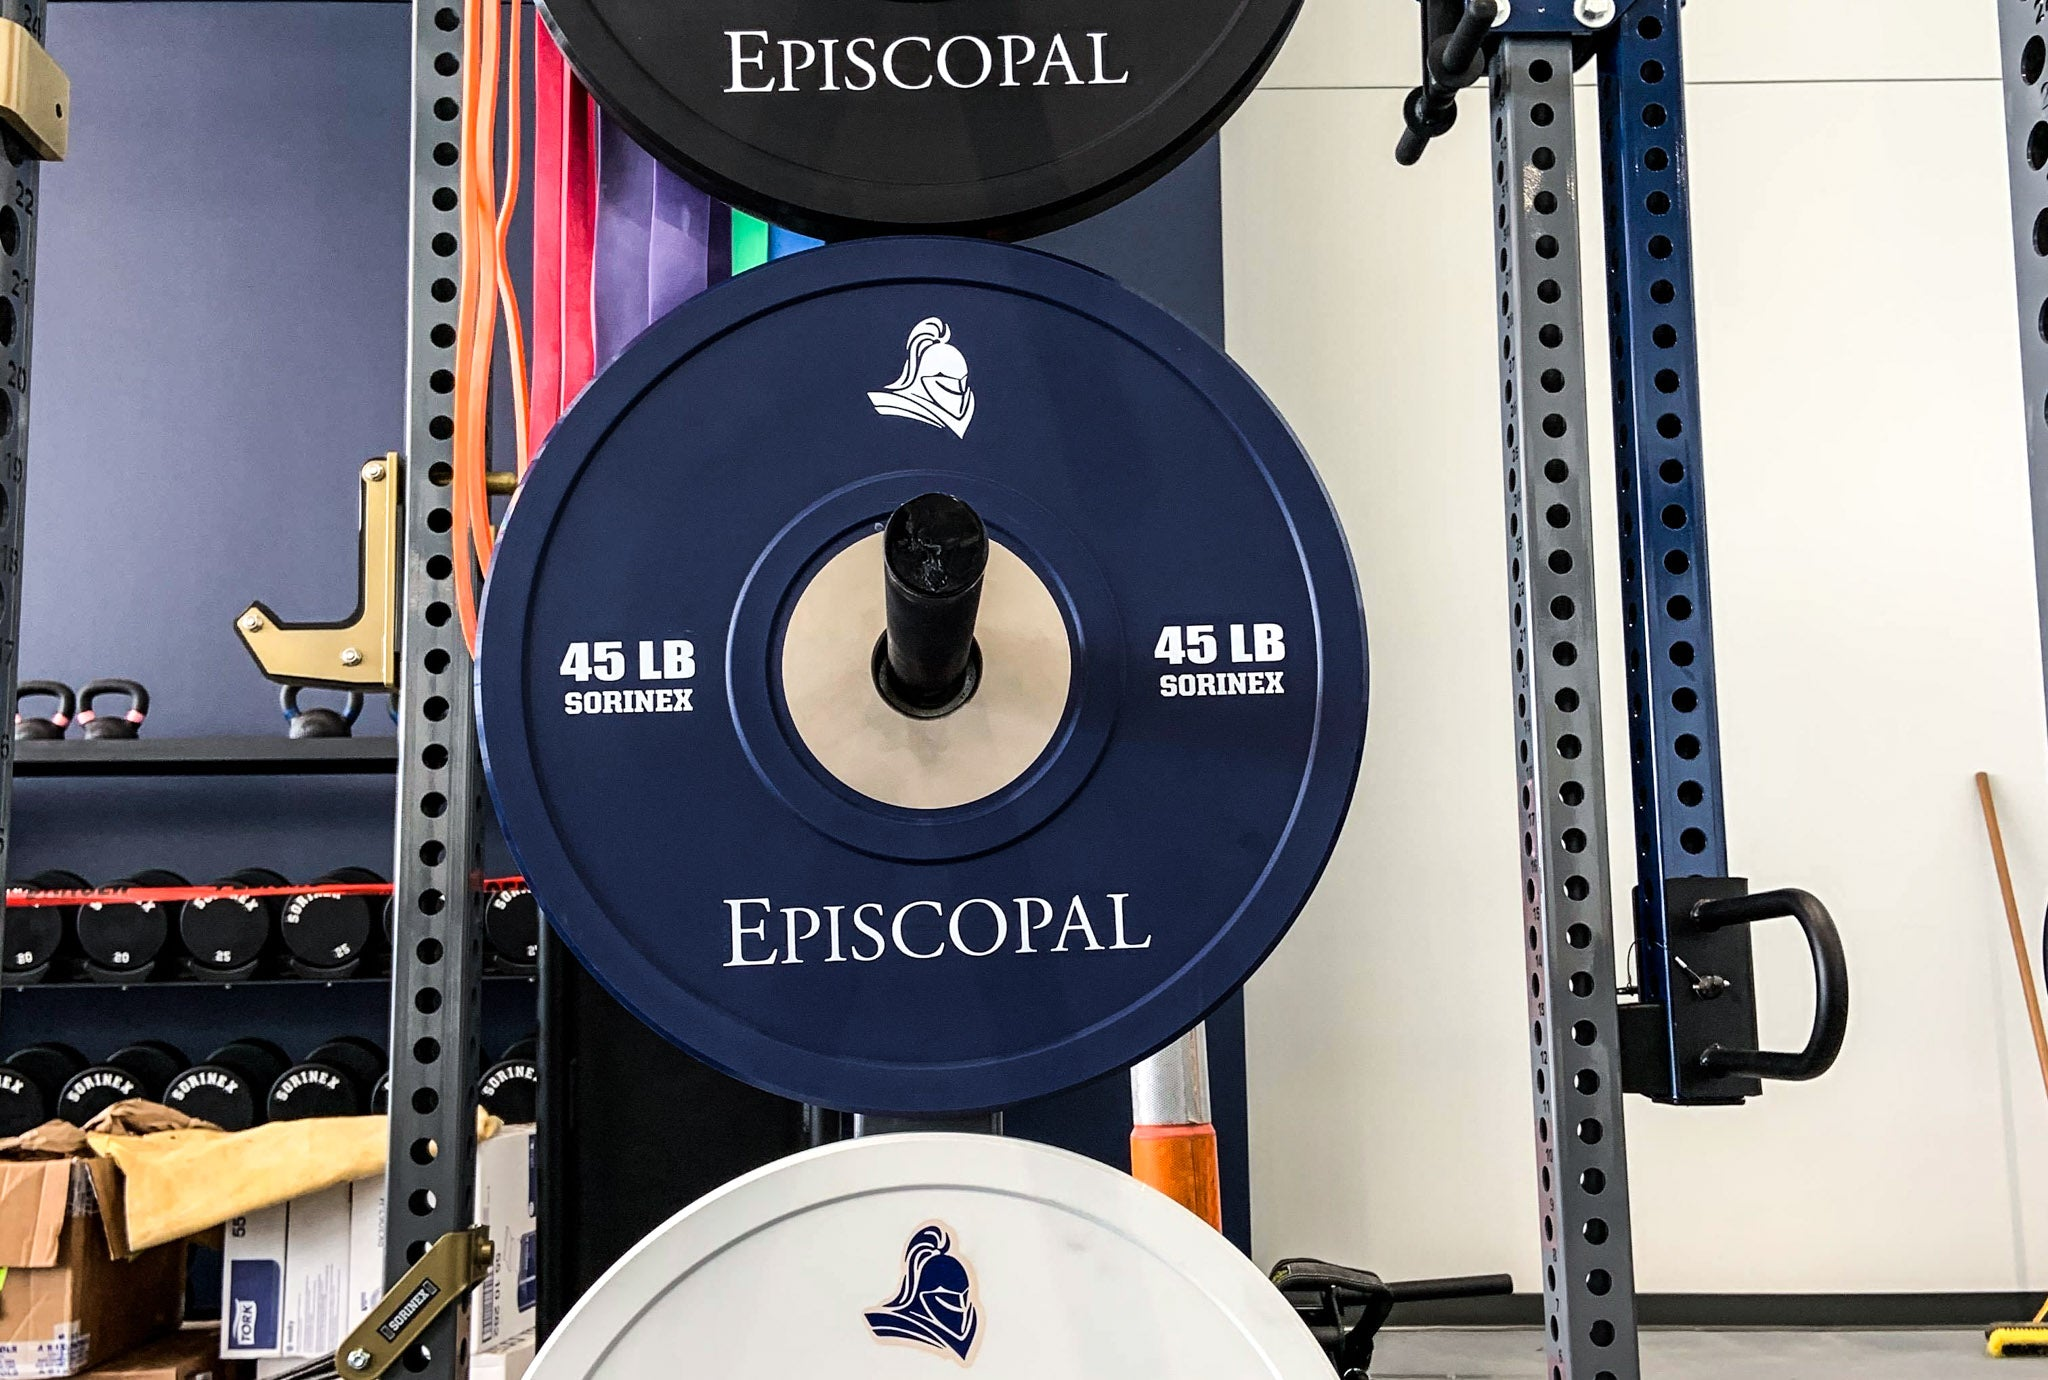 Episcopal High School bosco bumpers